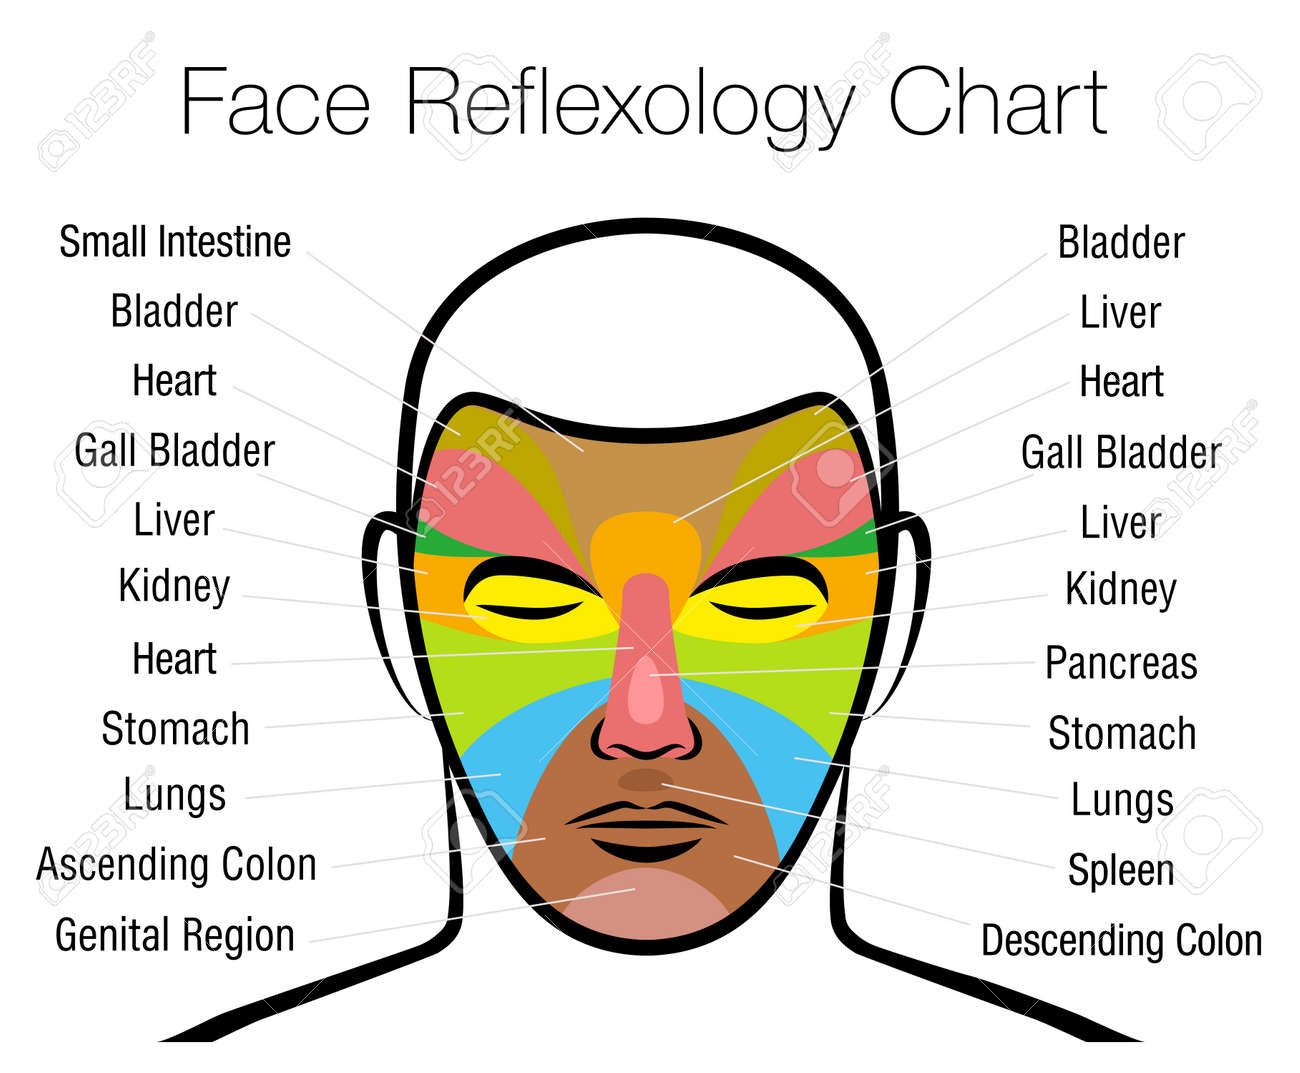 Face reflexology chart. Alternative acupressure and physiotherapy health treatment. Zone massage chart with colored areas and names of internal organs. Colorful face mapping. - 167159665